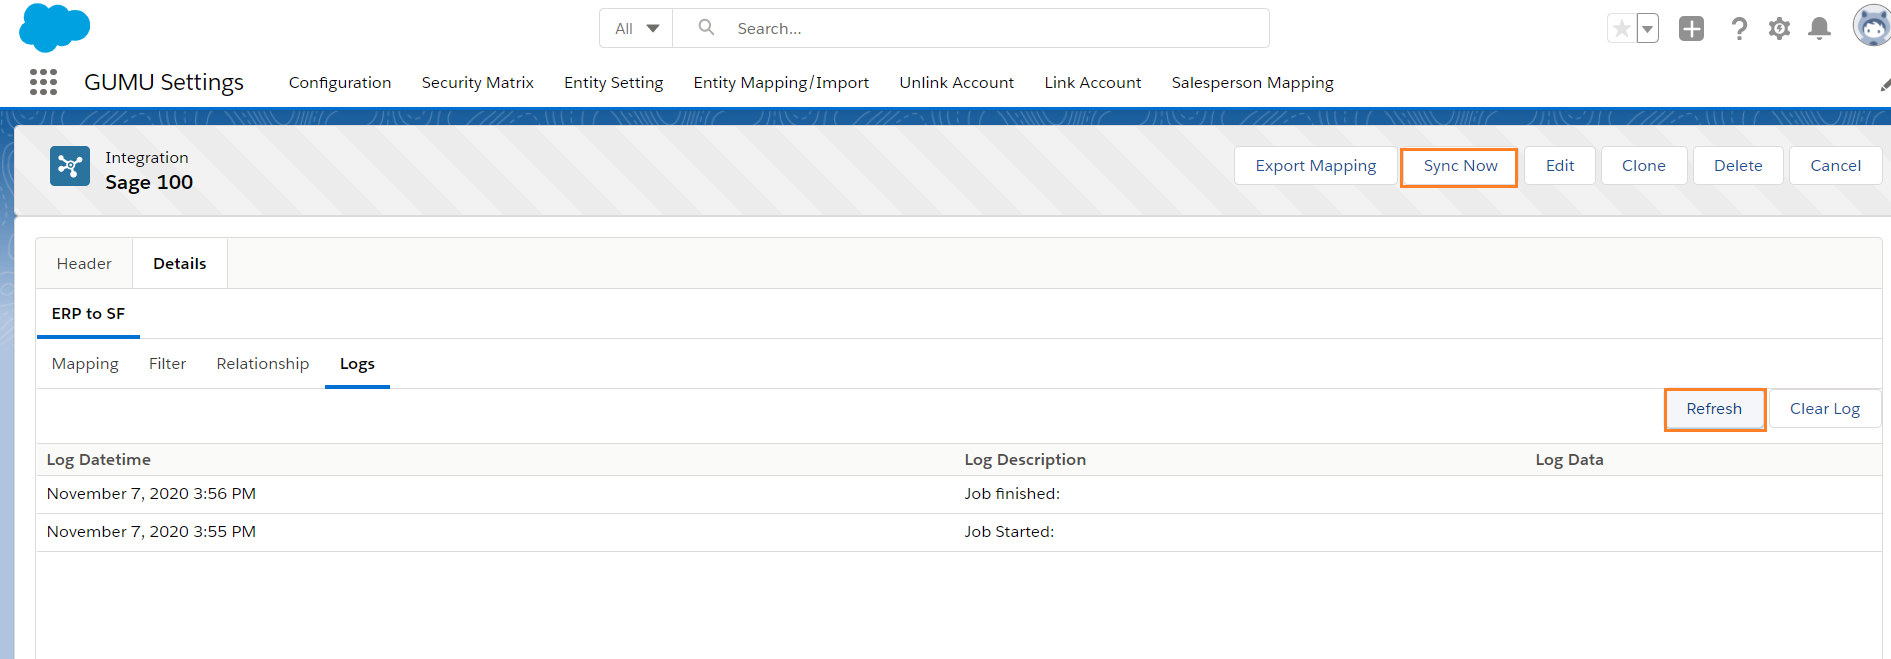 Import Log Section